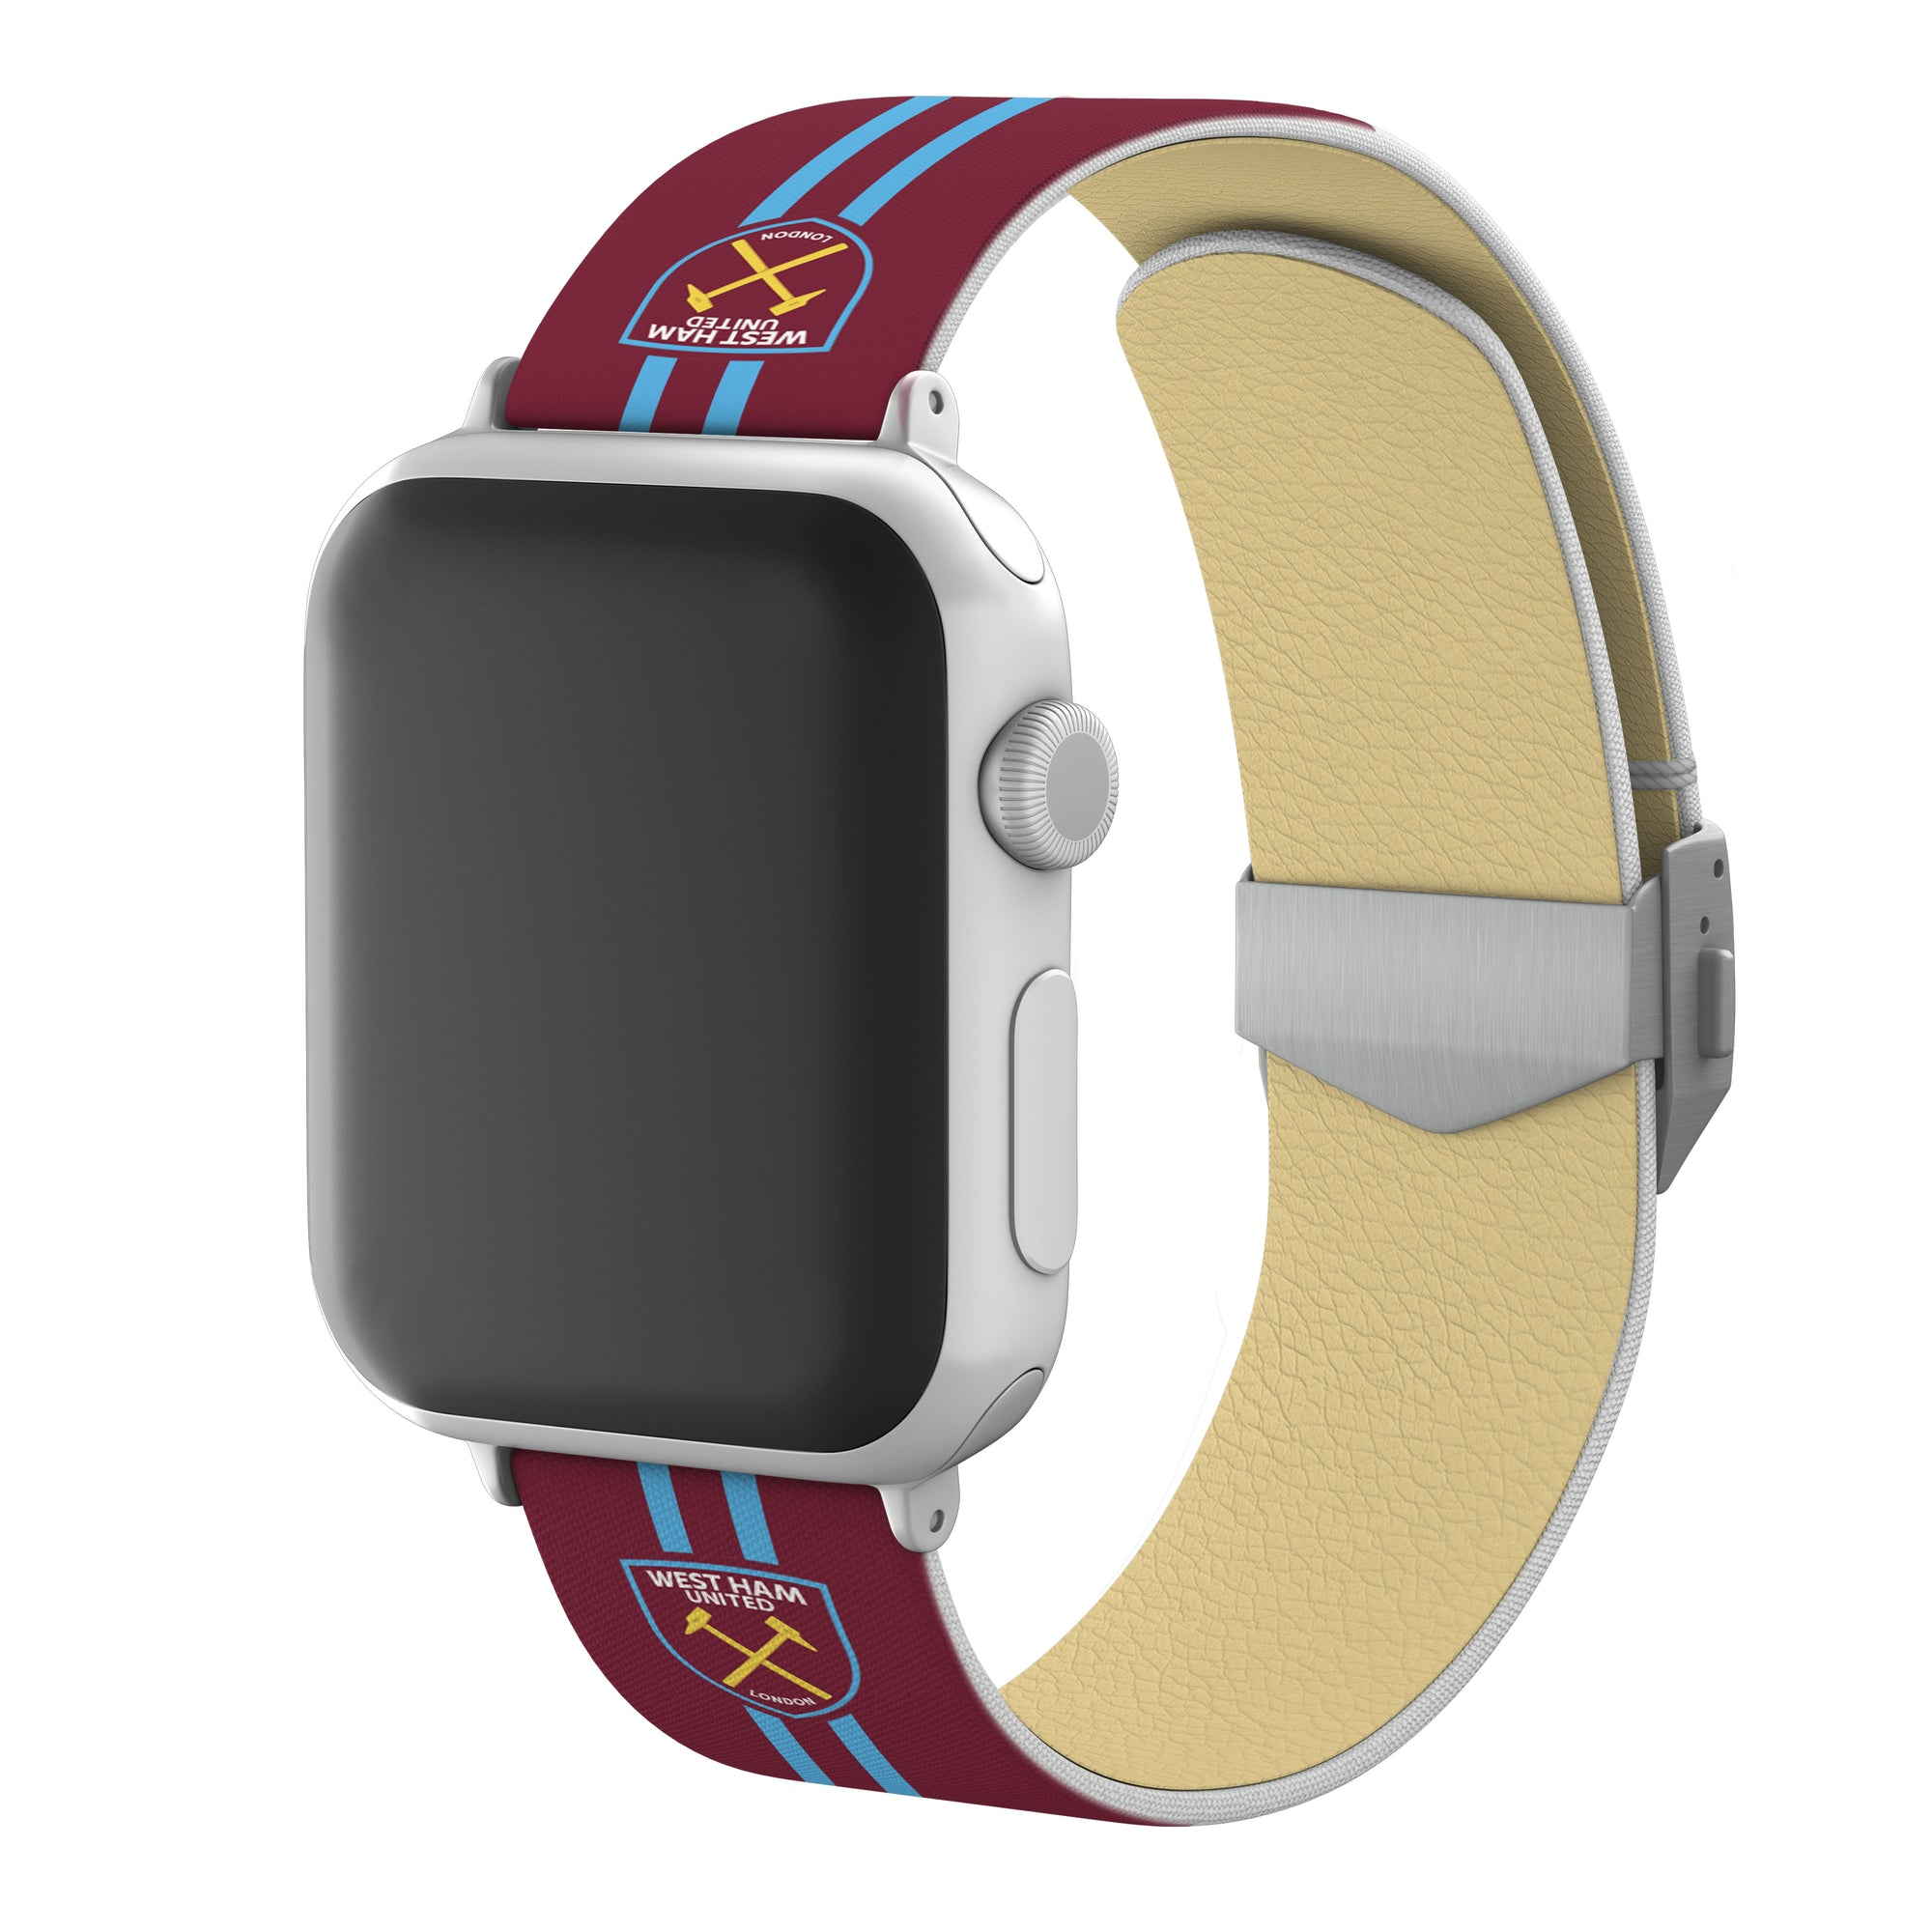 West Ham United FC Full Print Apple Watch Band With Engraved Buckle - Affinity Bands